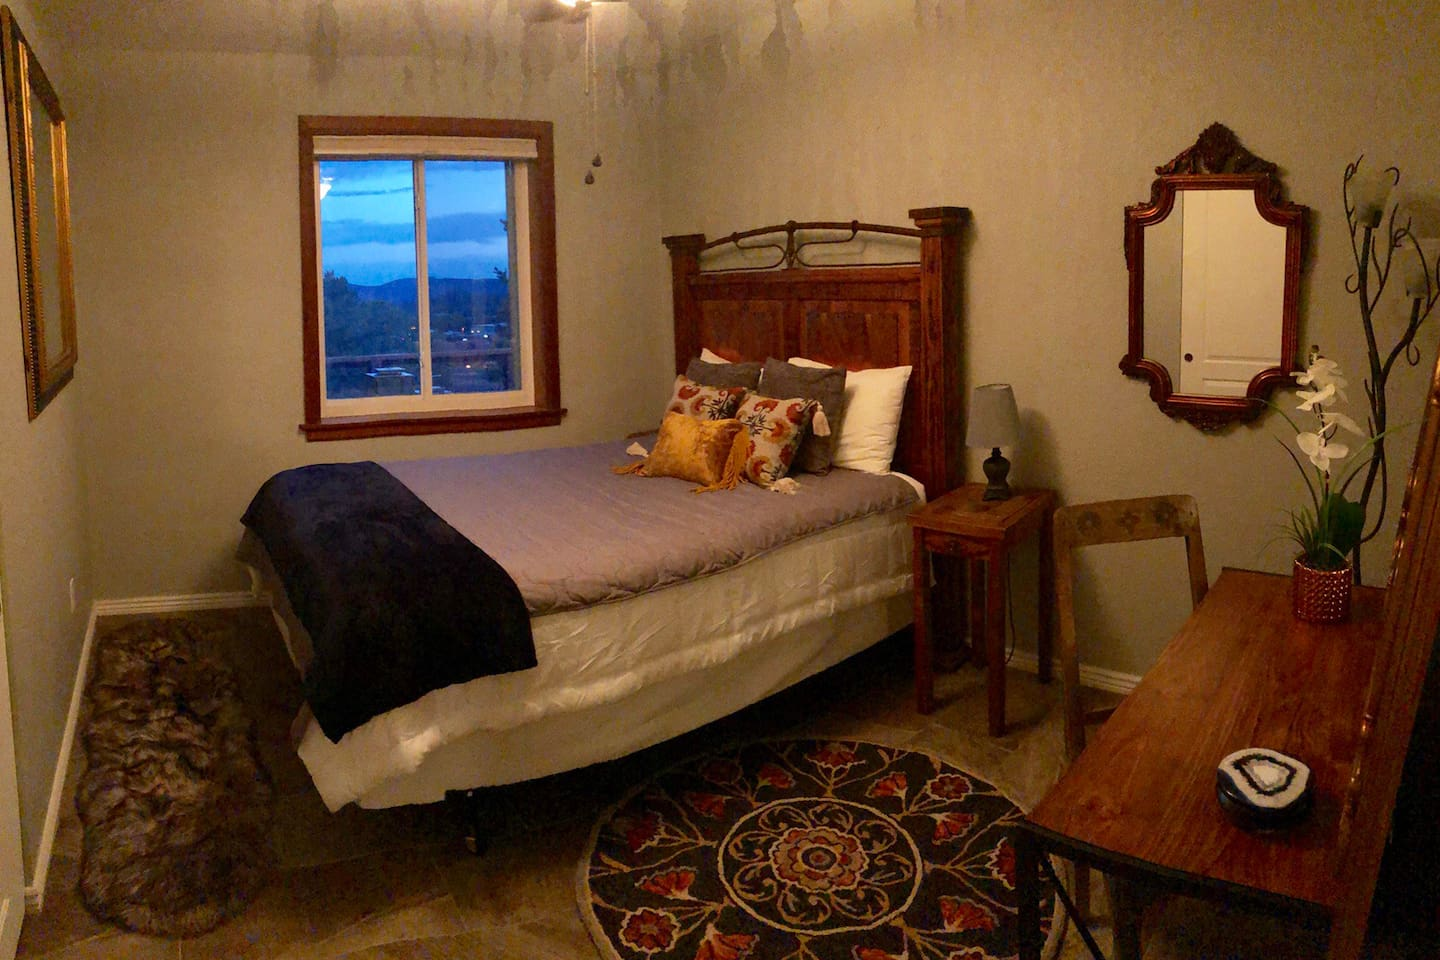 Bedroom with Queen size bed and desk.